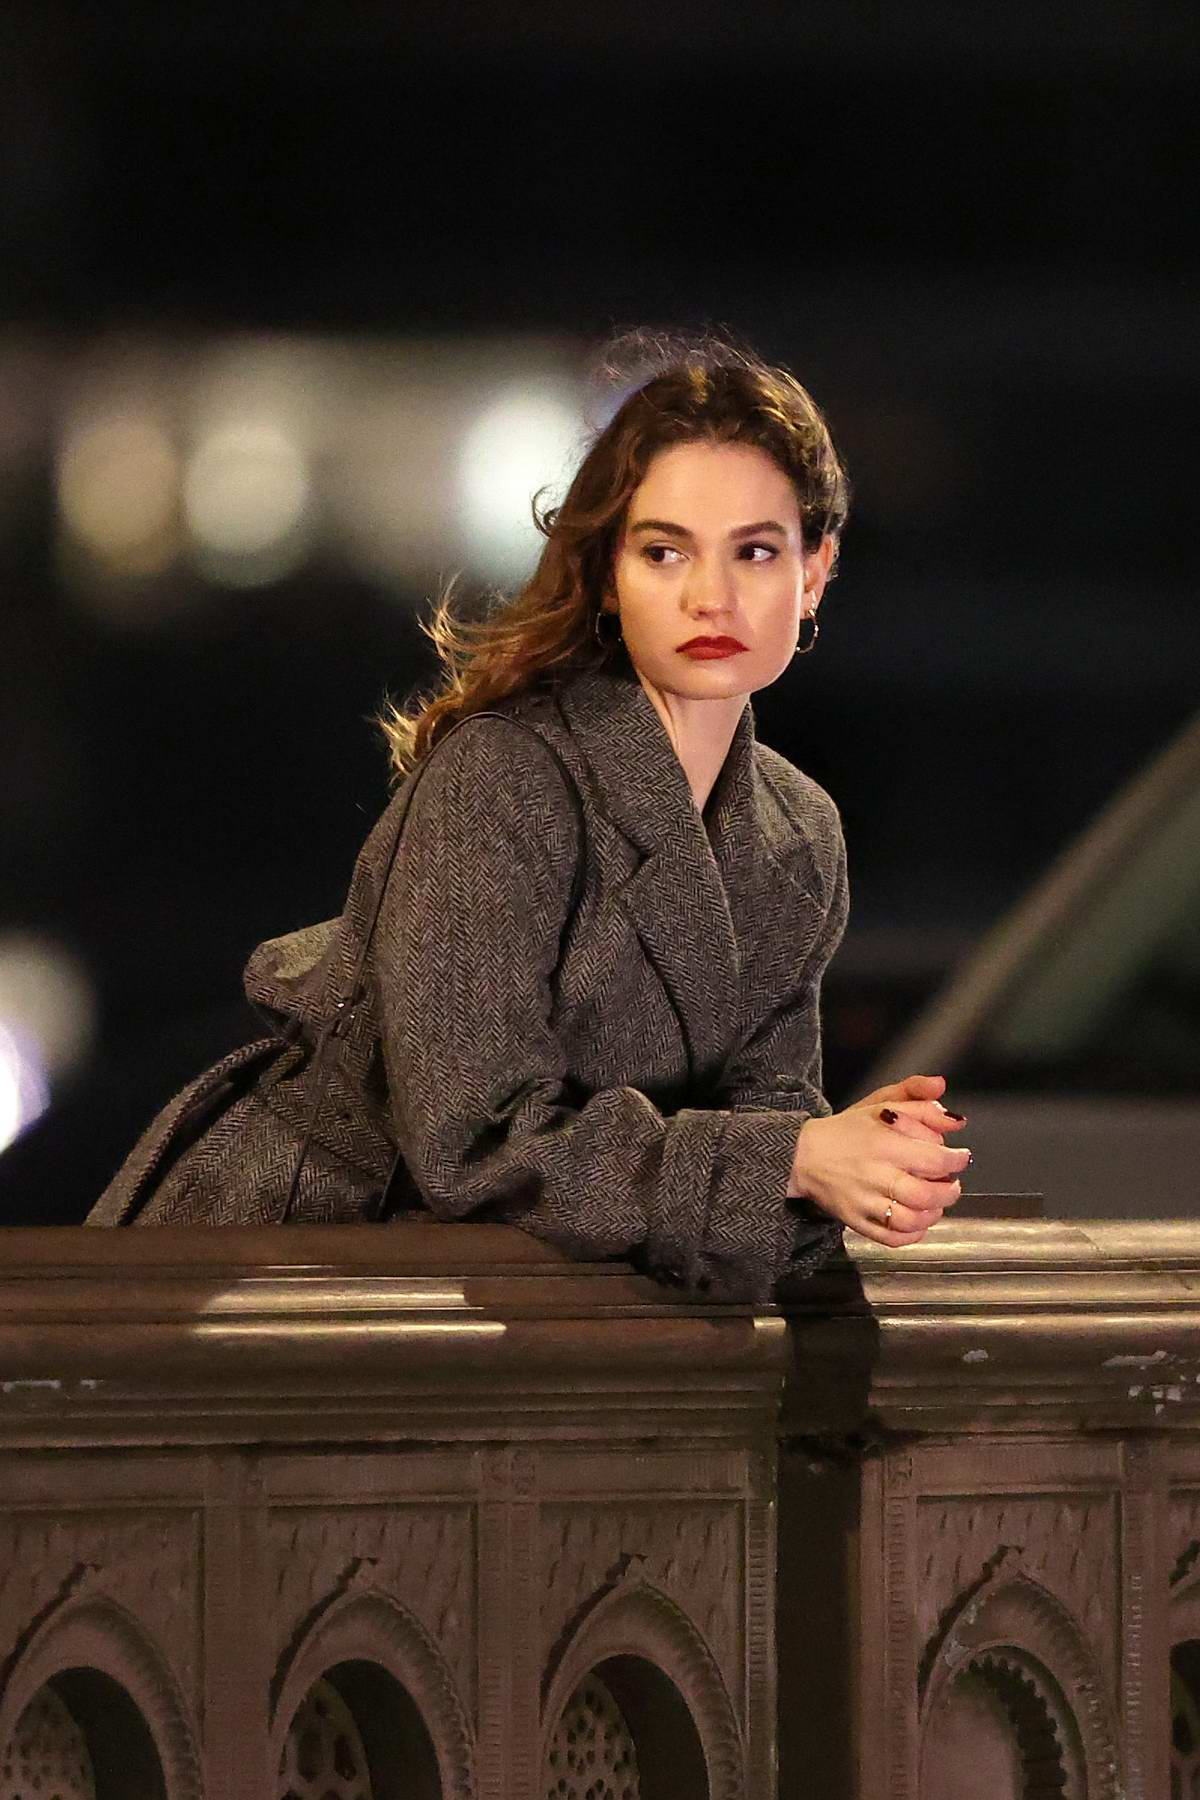 Lily James seen filming scenes for 'What's Love Got To Do With It?' on Battersea Bridge in London, UK